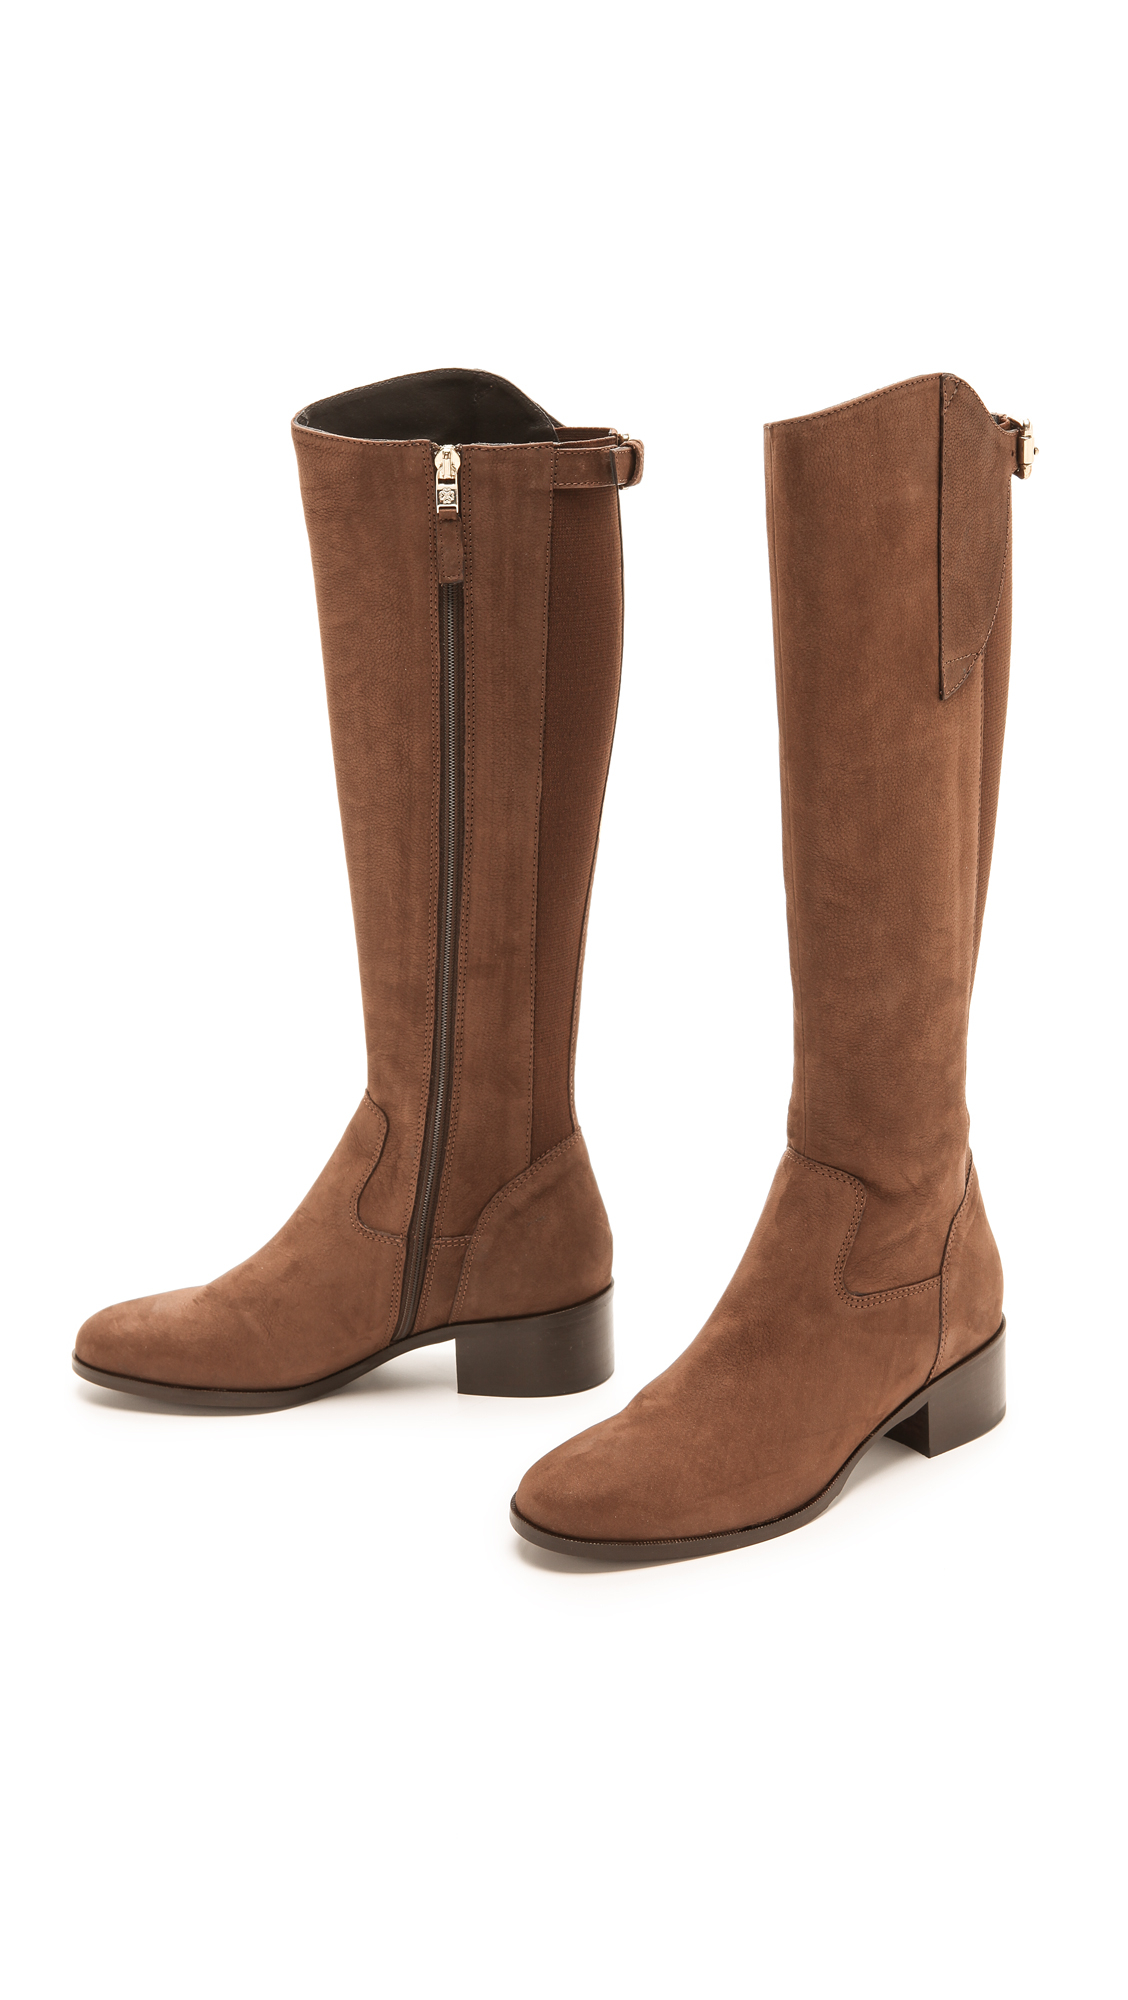 3b239741d L.K.Bennett Tala Knee Boots With Elastic Back - Brown in Brown - Lyst